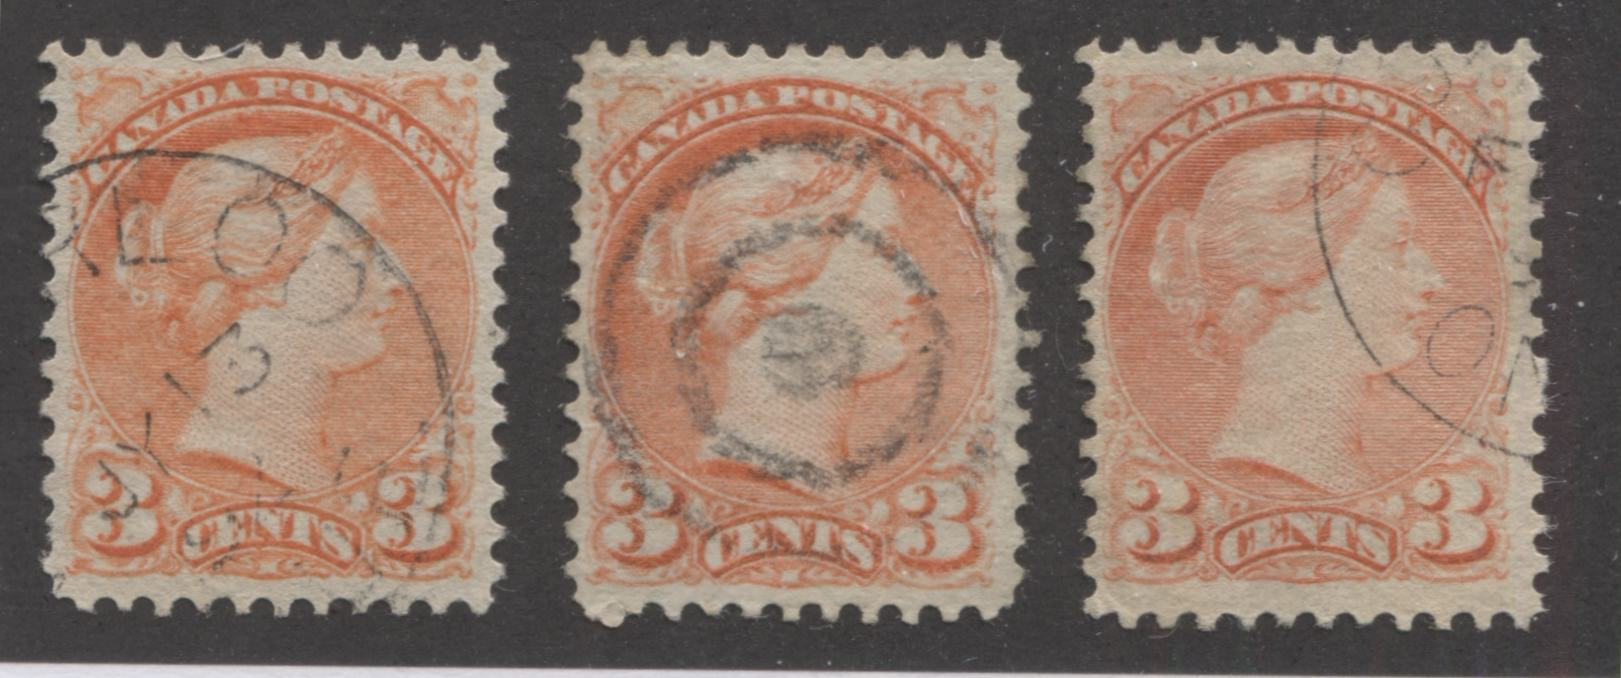 Canada #41 3c Vermilion Red Queen Victoria, 1870-1897 Small Queen Issue, Three Very Fine Used Examples of the Second Ottawa Printing, Each a Slightly Different Shade Brixton Chrome